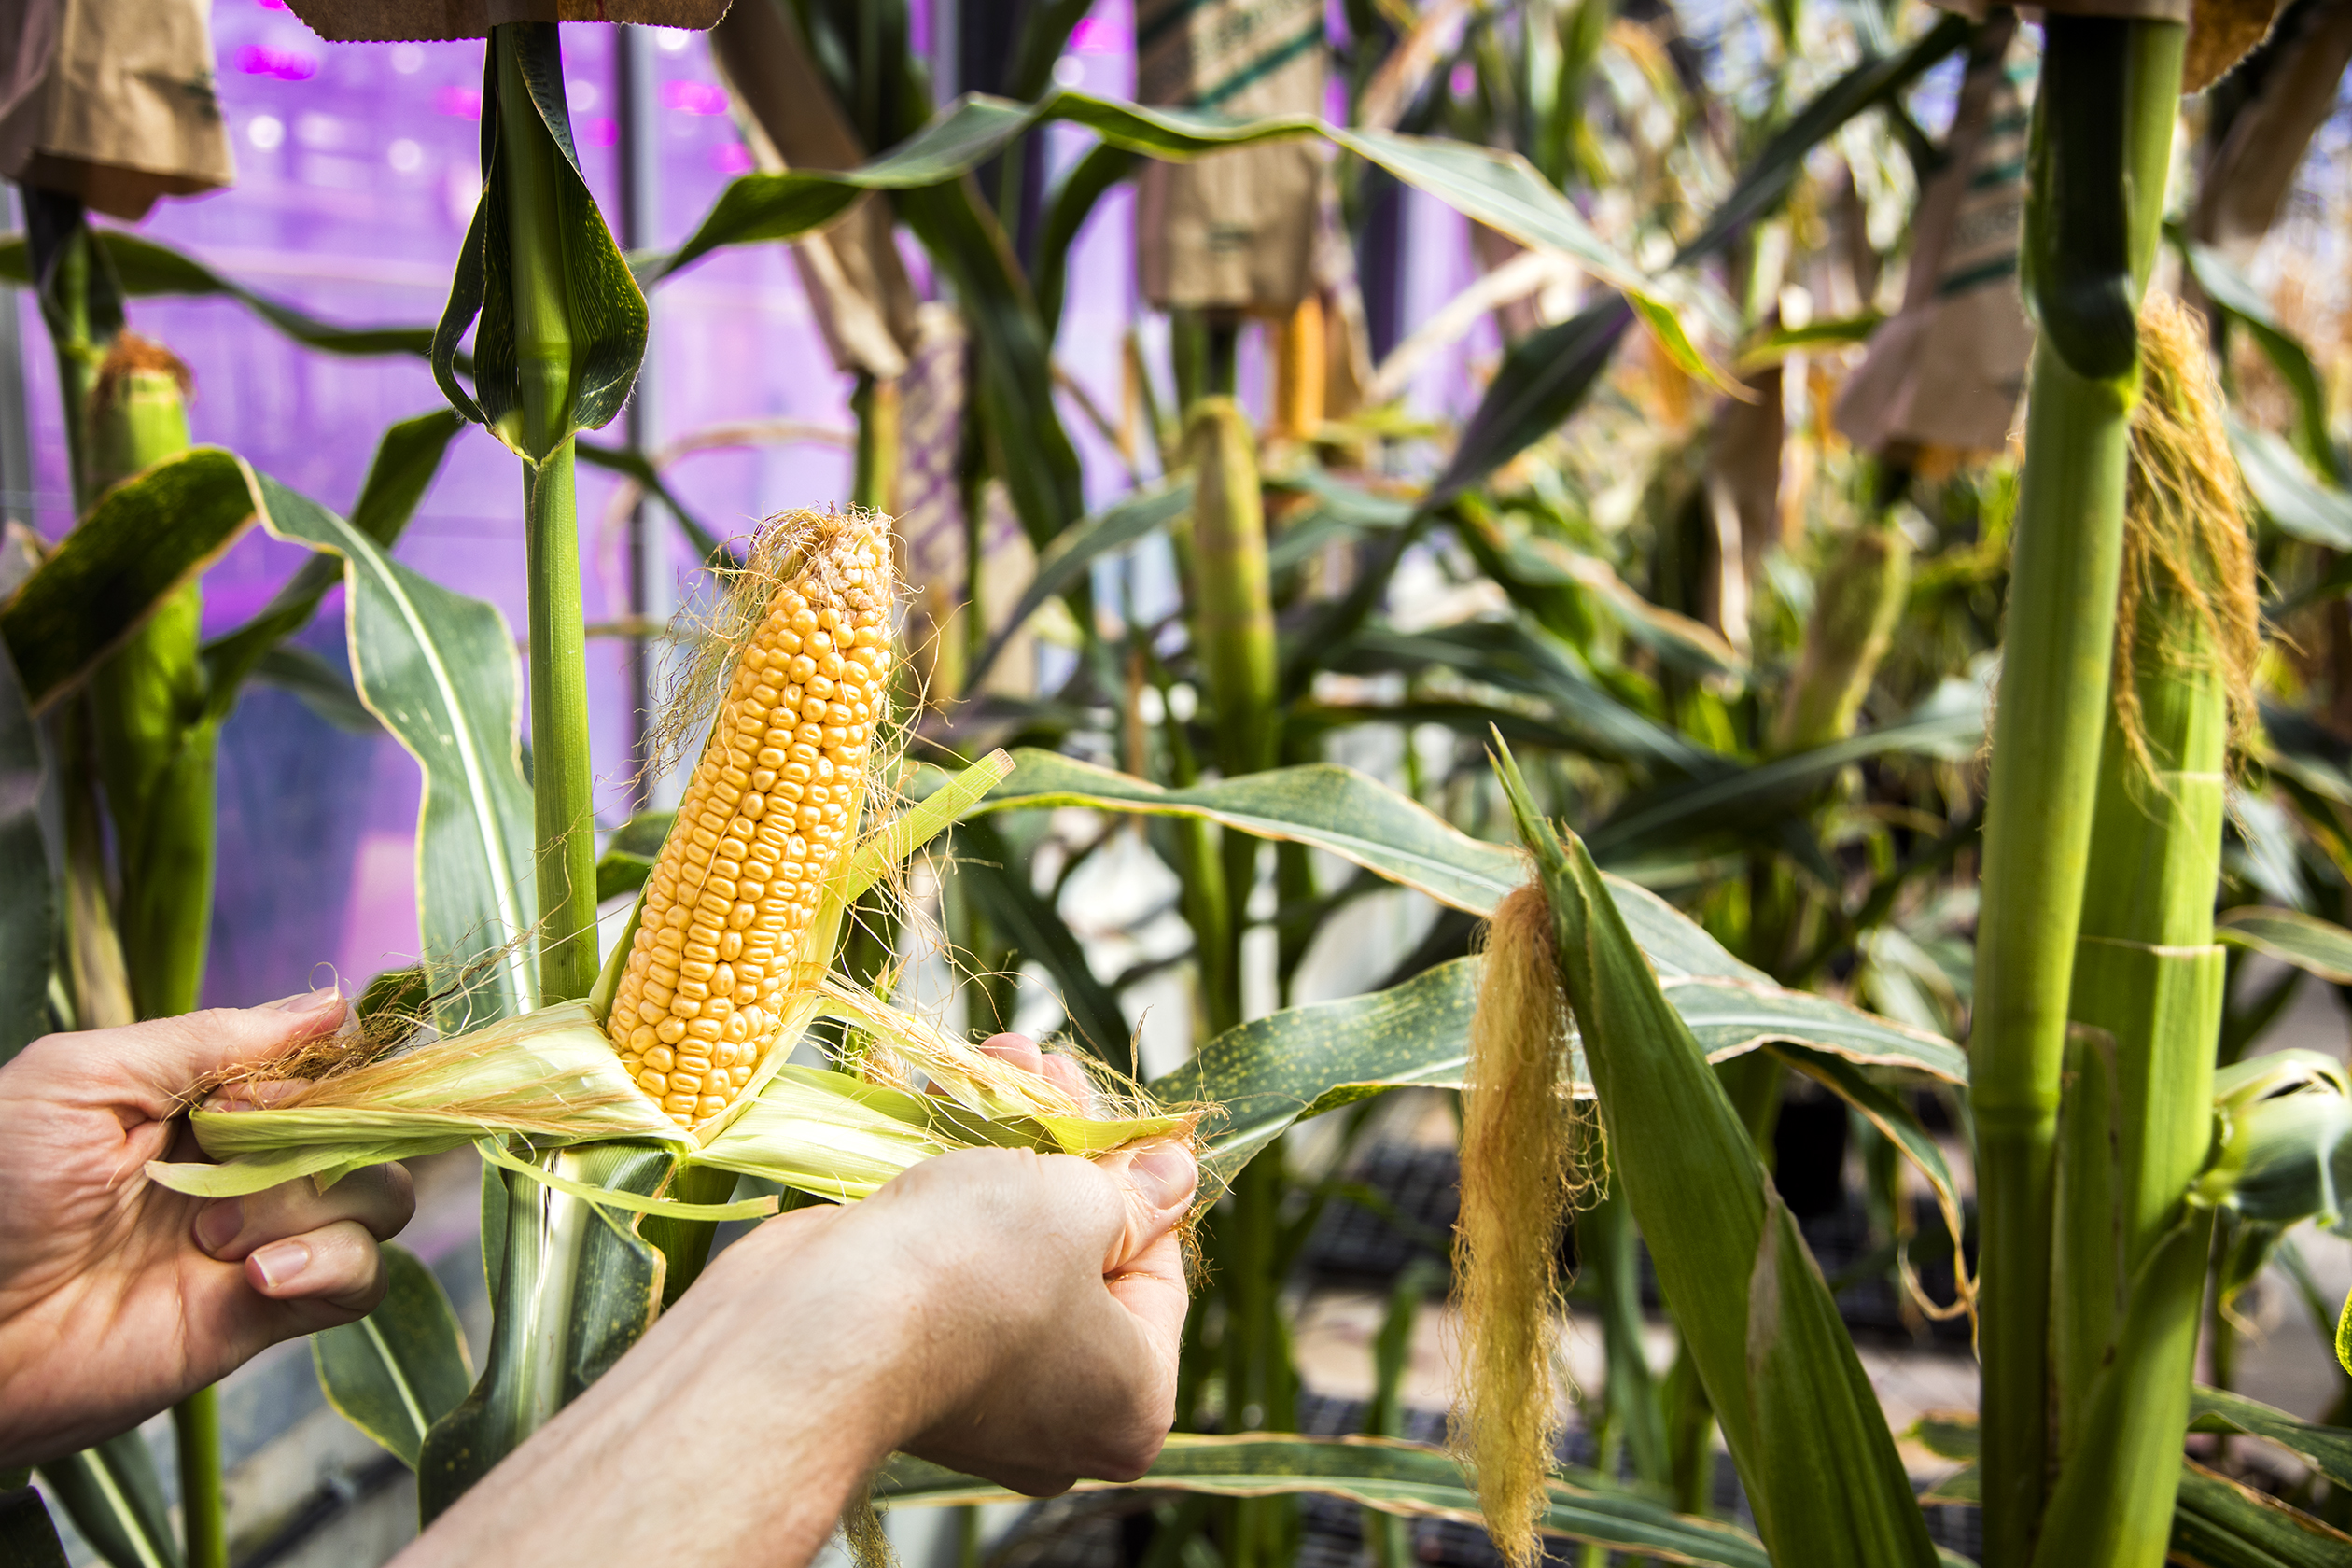 David O'Connor, corn and soy production lead, checks the quality of corn in one of Monsanto's greenhouses at its research facility in Chesterfield, Mo., on Thursday, May 5, 2016. Photo by Ryan Donnell.